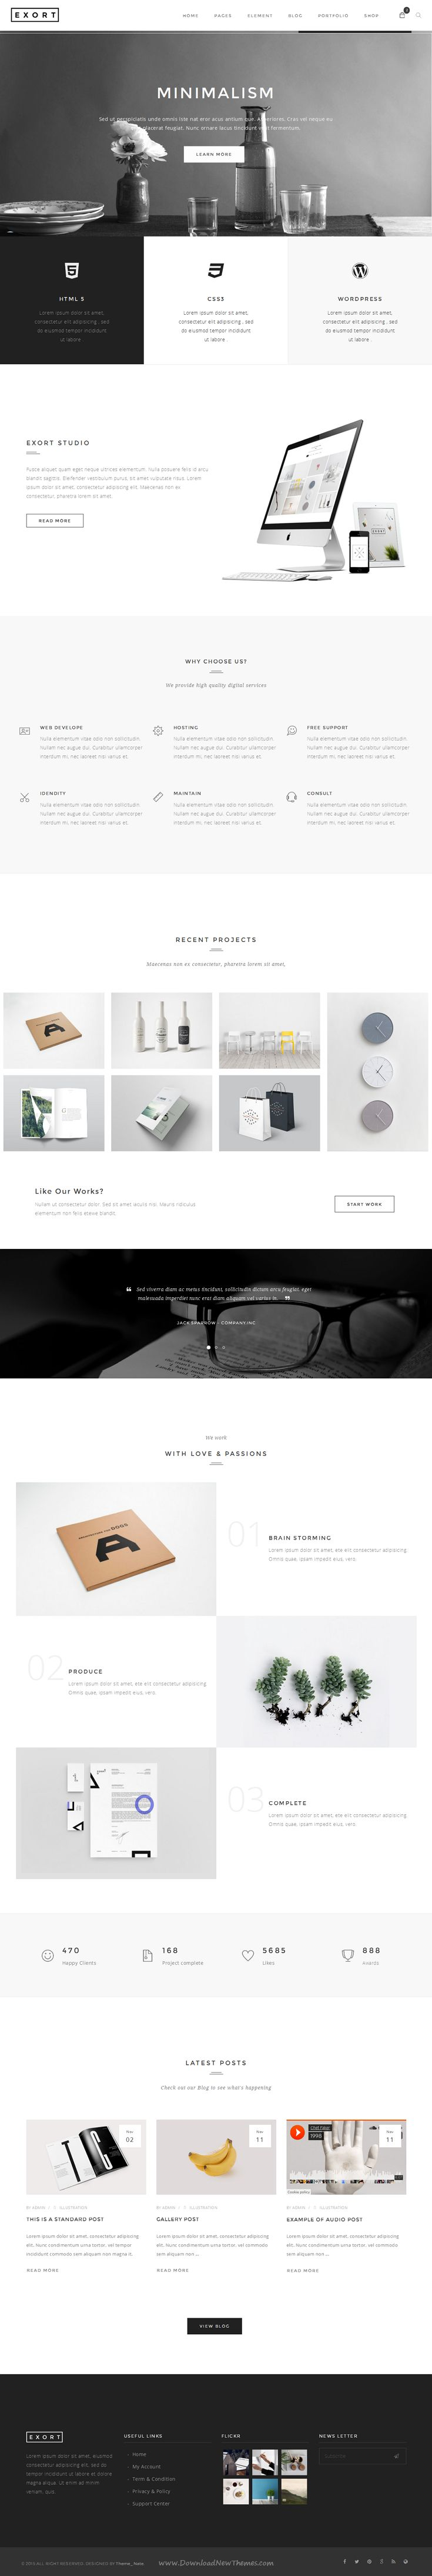 Exort is a Clean & Creative responsive multipurpose bootstrap template, it is a perfect choice for any type of site like design agency, corporate, restaurant, personal, showcase, blog, magazine, apps gallery, portfolio, eCommerce, product & etc Download Now➝ http://themeforest.net/item/exort-responsive-multipurpose-html-template/15869946?ref=Datasata